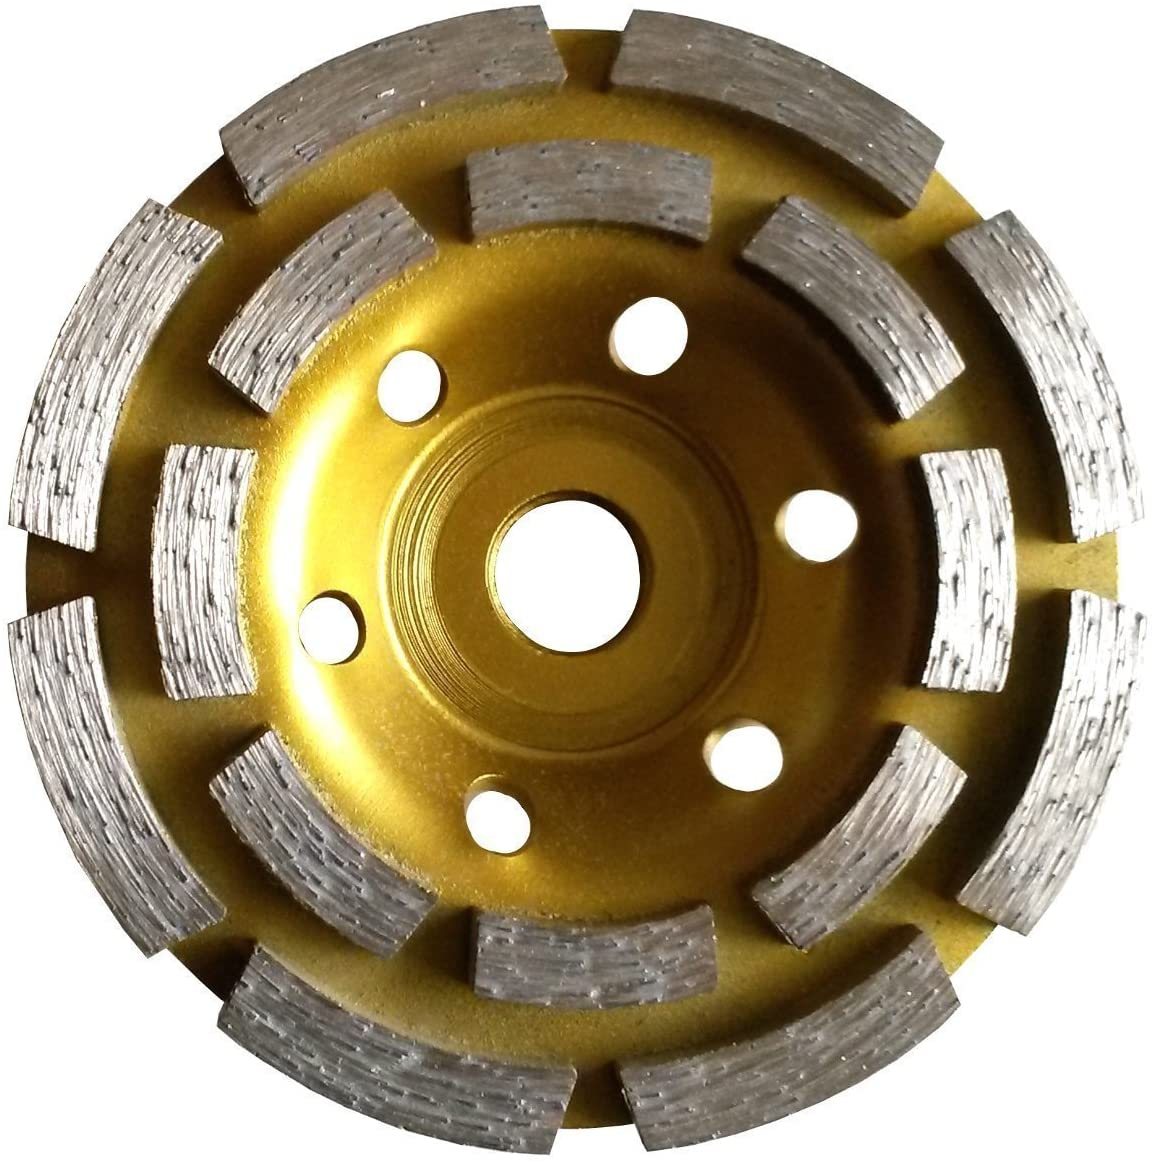 7 Inch (pack of 2 Pieces) Diamond Double Row Grinding cup wheel 28 segment for concrete stone birck cement surface grinding coating paint remove mortar leveling heavy duty abrasive wheel sanding disc